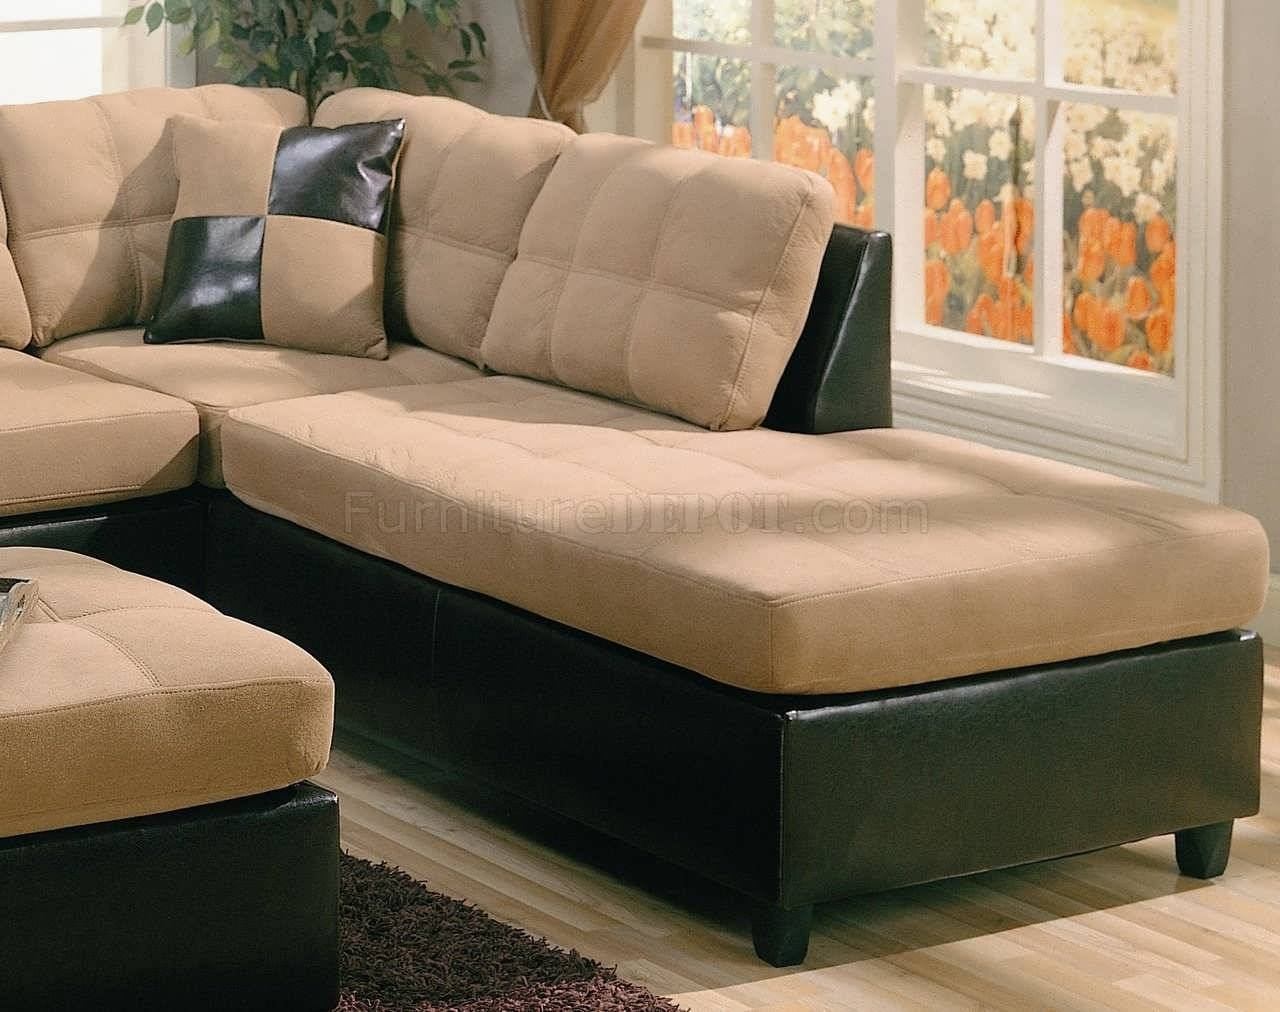 Sofa : How To Clean Sofa Furniture Stores Sofa Bed Green Sofa within Green Microfiber Sofas (Image 11 of 15)